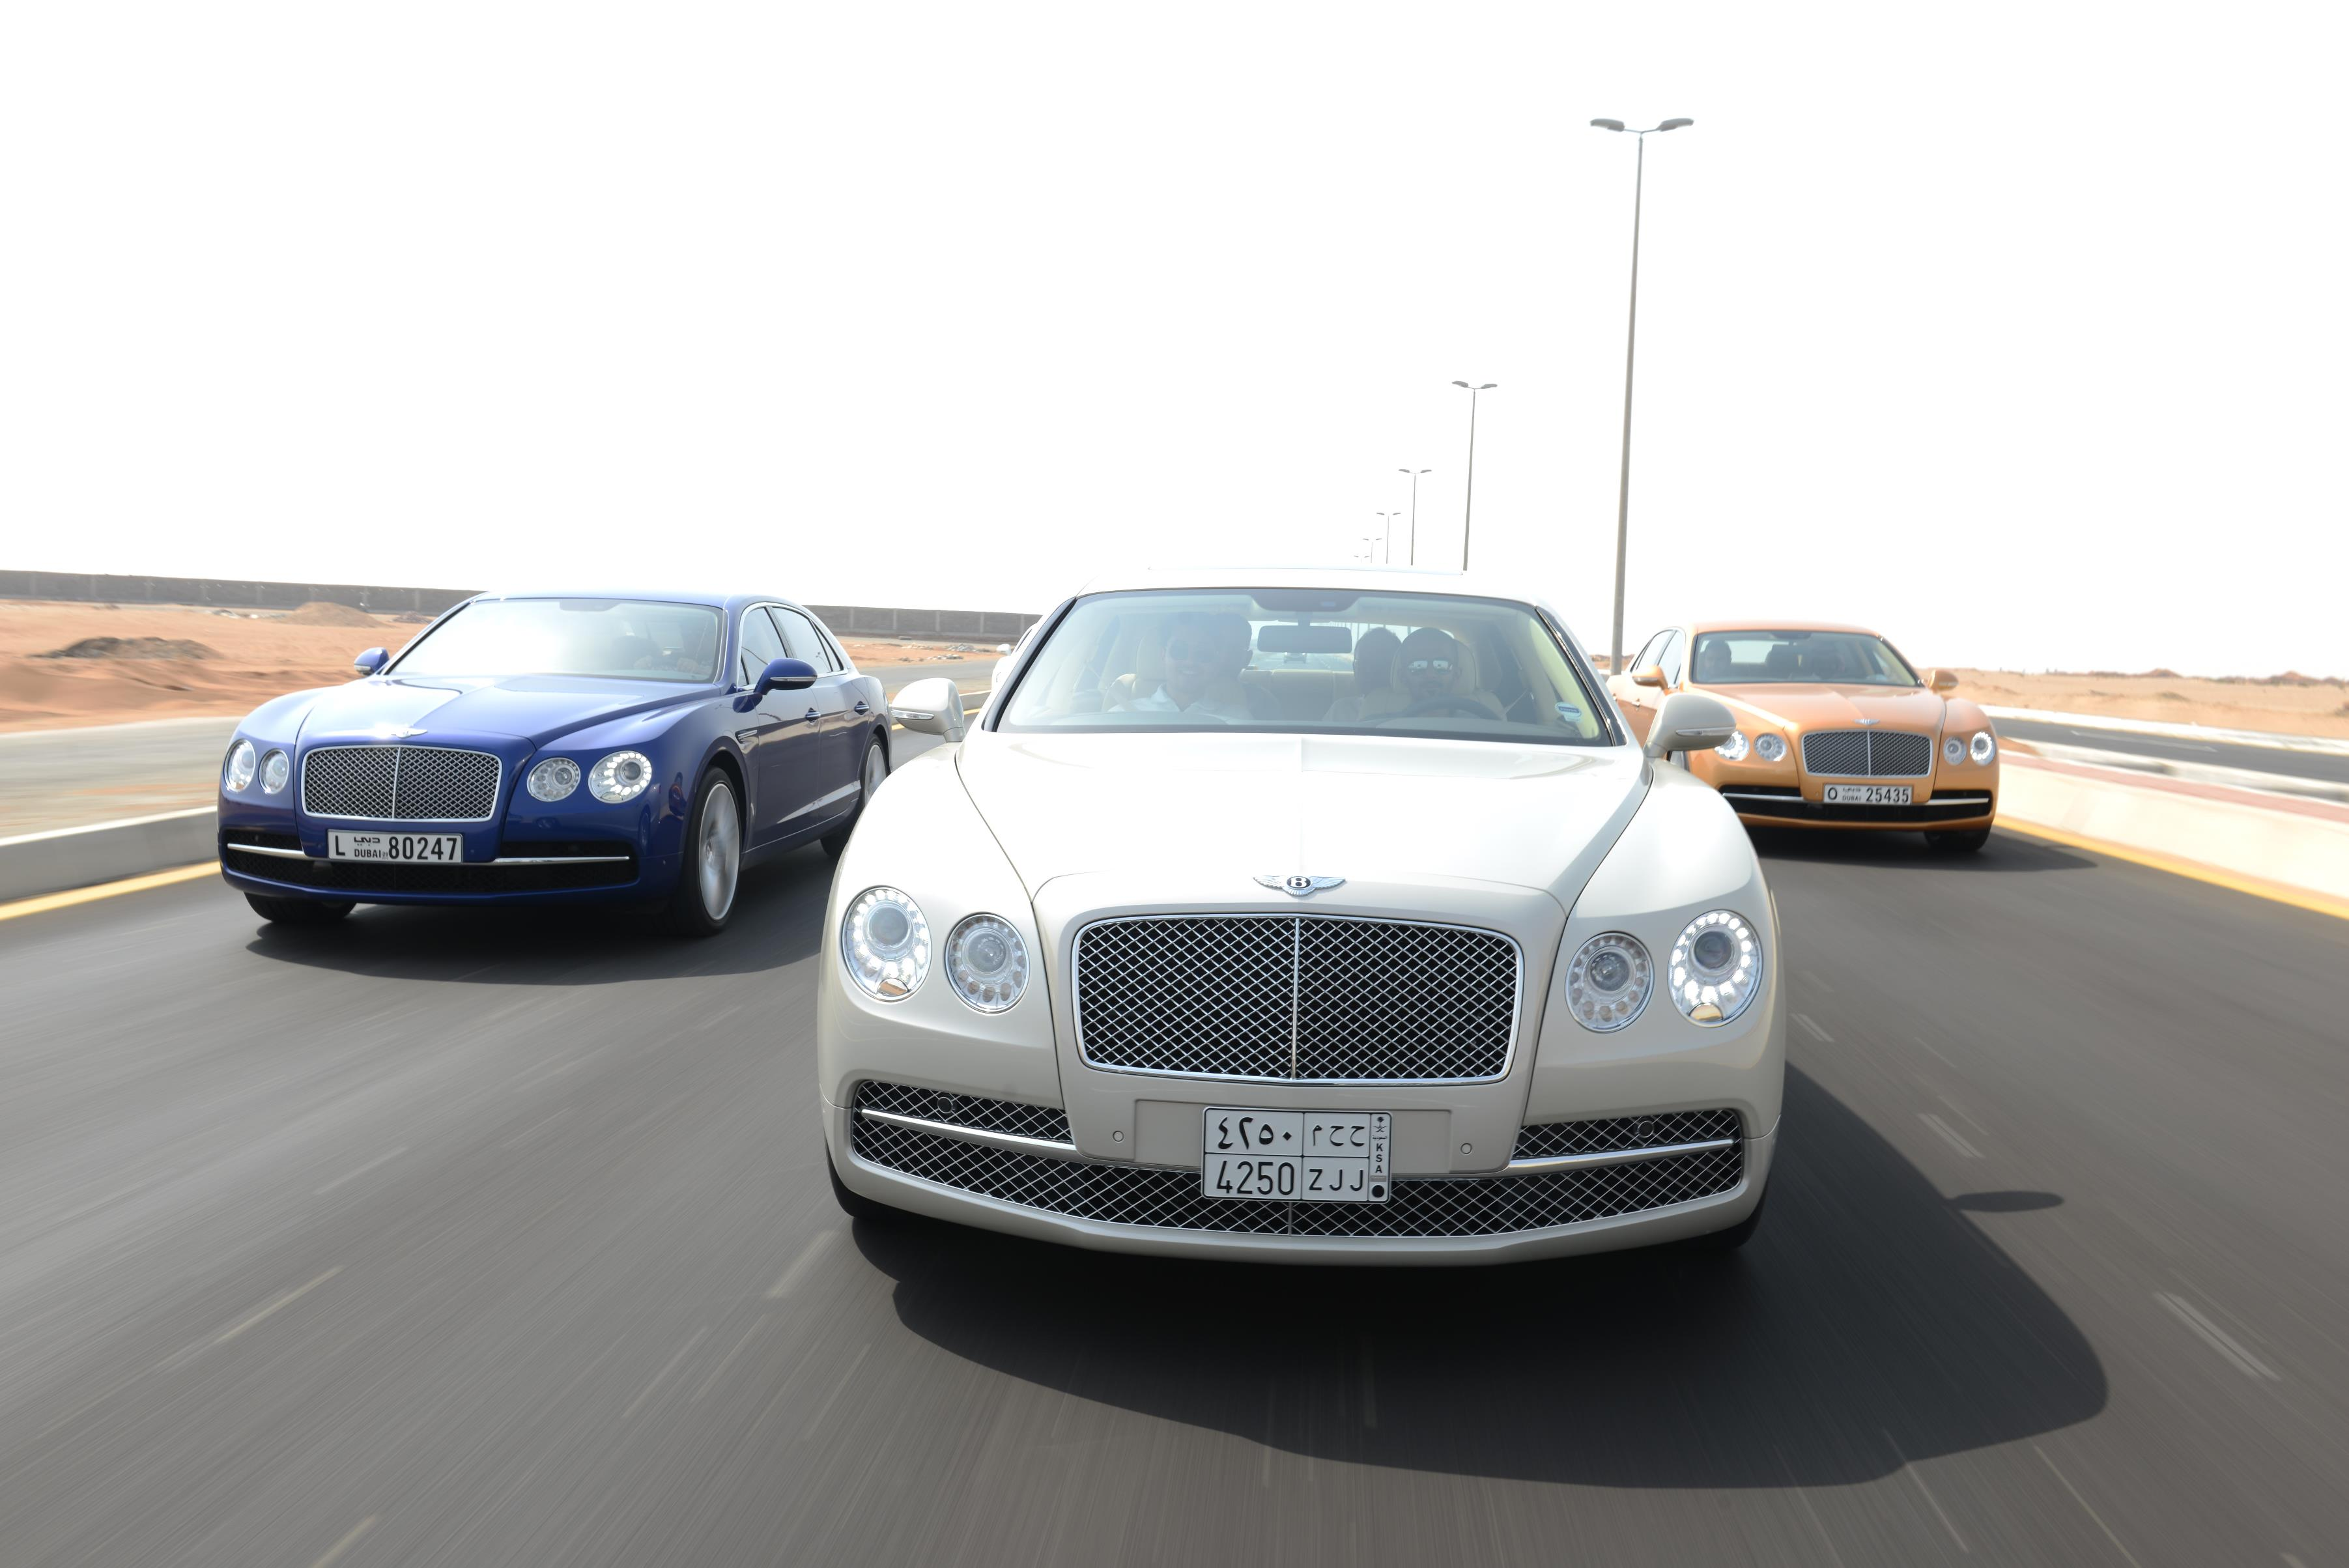 Bentley Motors Middle East Deliveries Up 30% in H1 2014